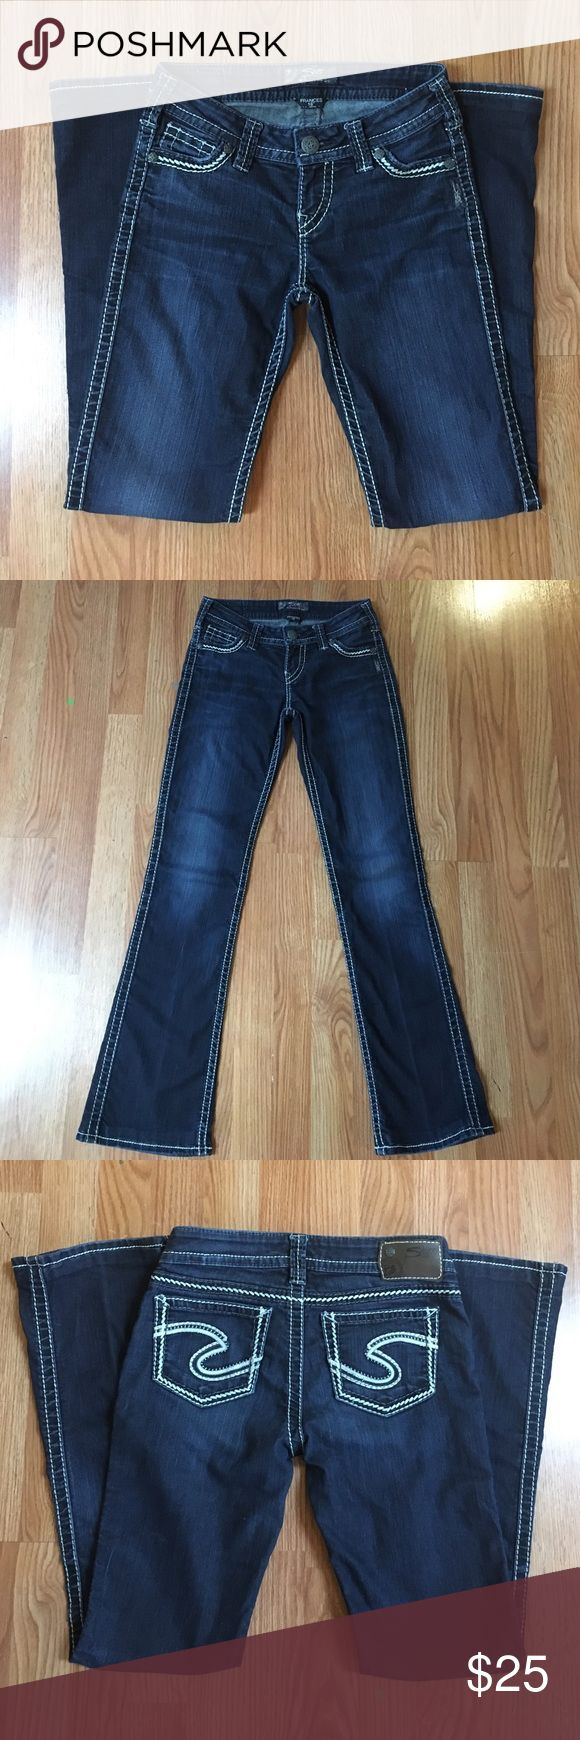 1000  ideas about Women&39s Silver Jeans on Pinterest | Stretch